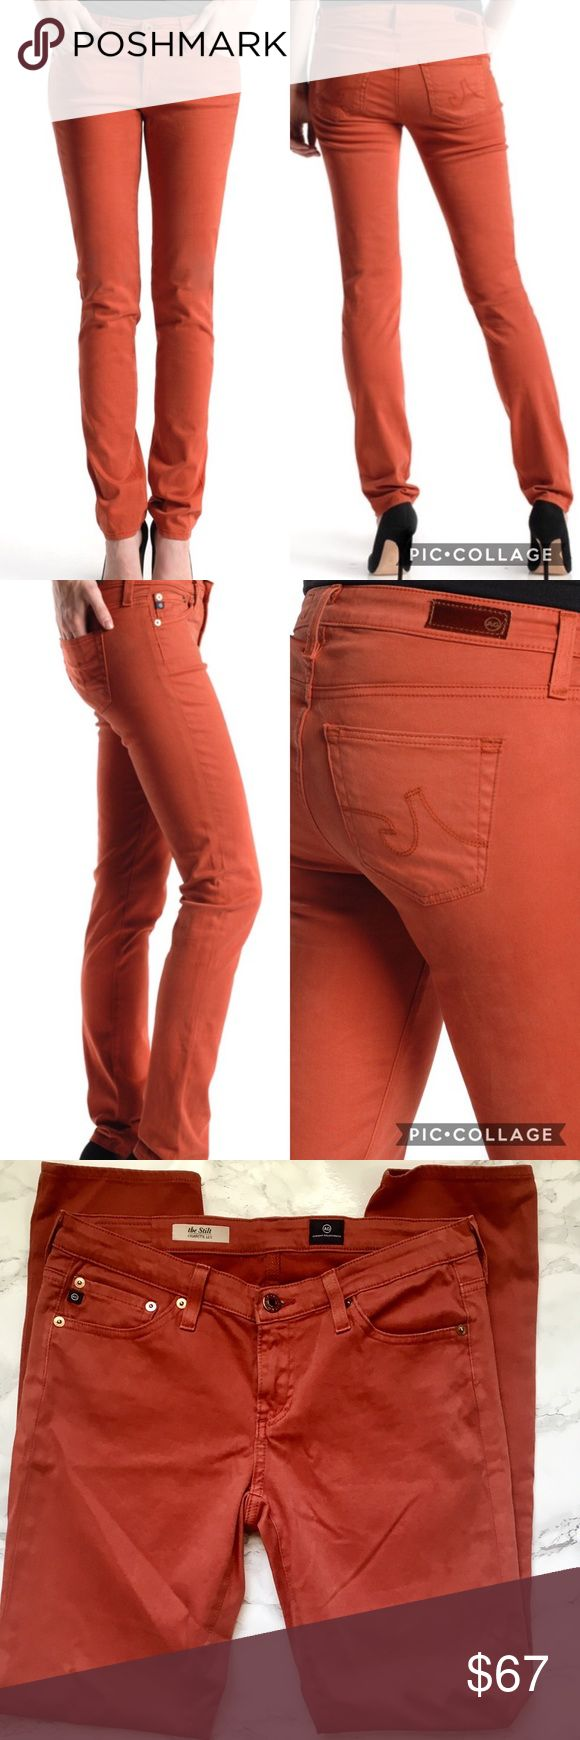 AG The Stilt Cigarette Jean in Rust Color EUC size 28 AG Adriano Goldschmied the Stilit Cigarette Jean in Rust color. No flaws! Super comfortable! Please feel free to ask any questions before purchasing. I am happy to provide measurements/photos upon request! 😊  ❣️Open to Offers unless Final Price ❣️No Trades or Holds ❣️Smoke Free Home ❣️Bundle Discounts! 15% off 2+ items Anthropologie Jeans Skinny